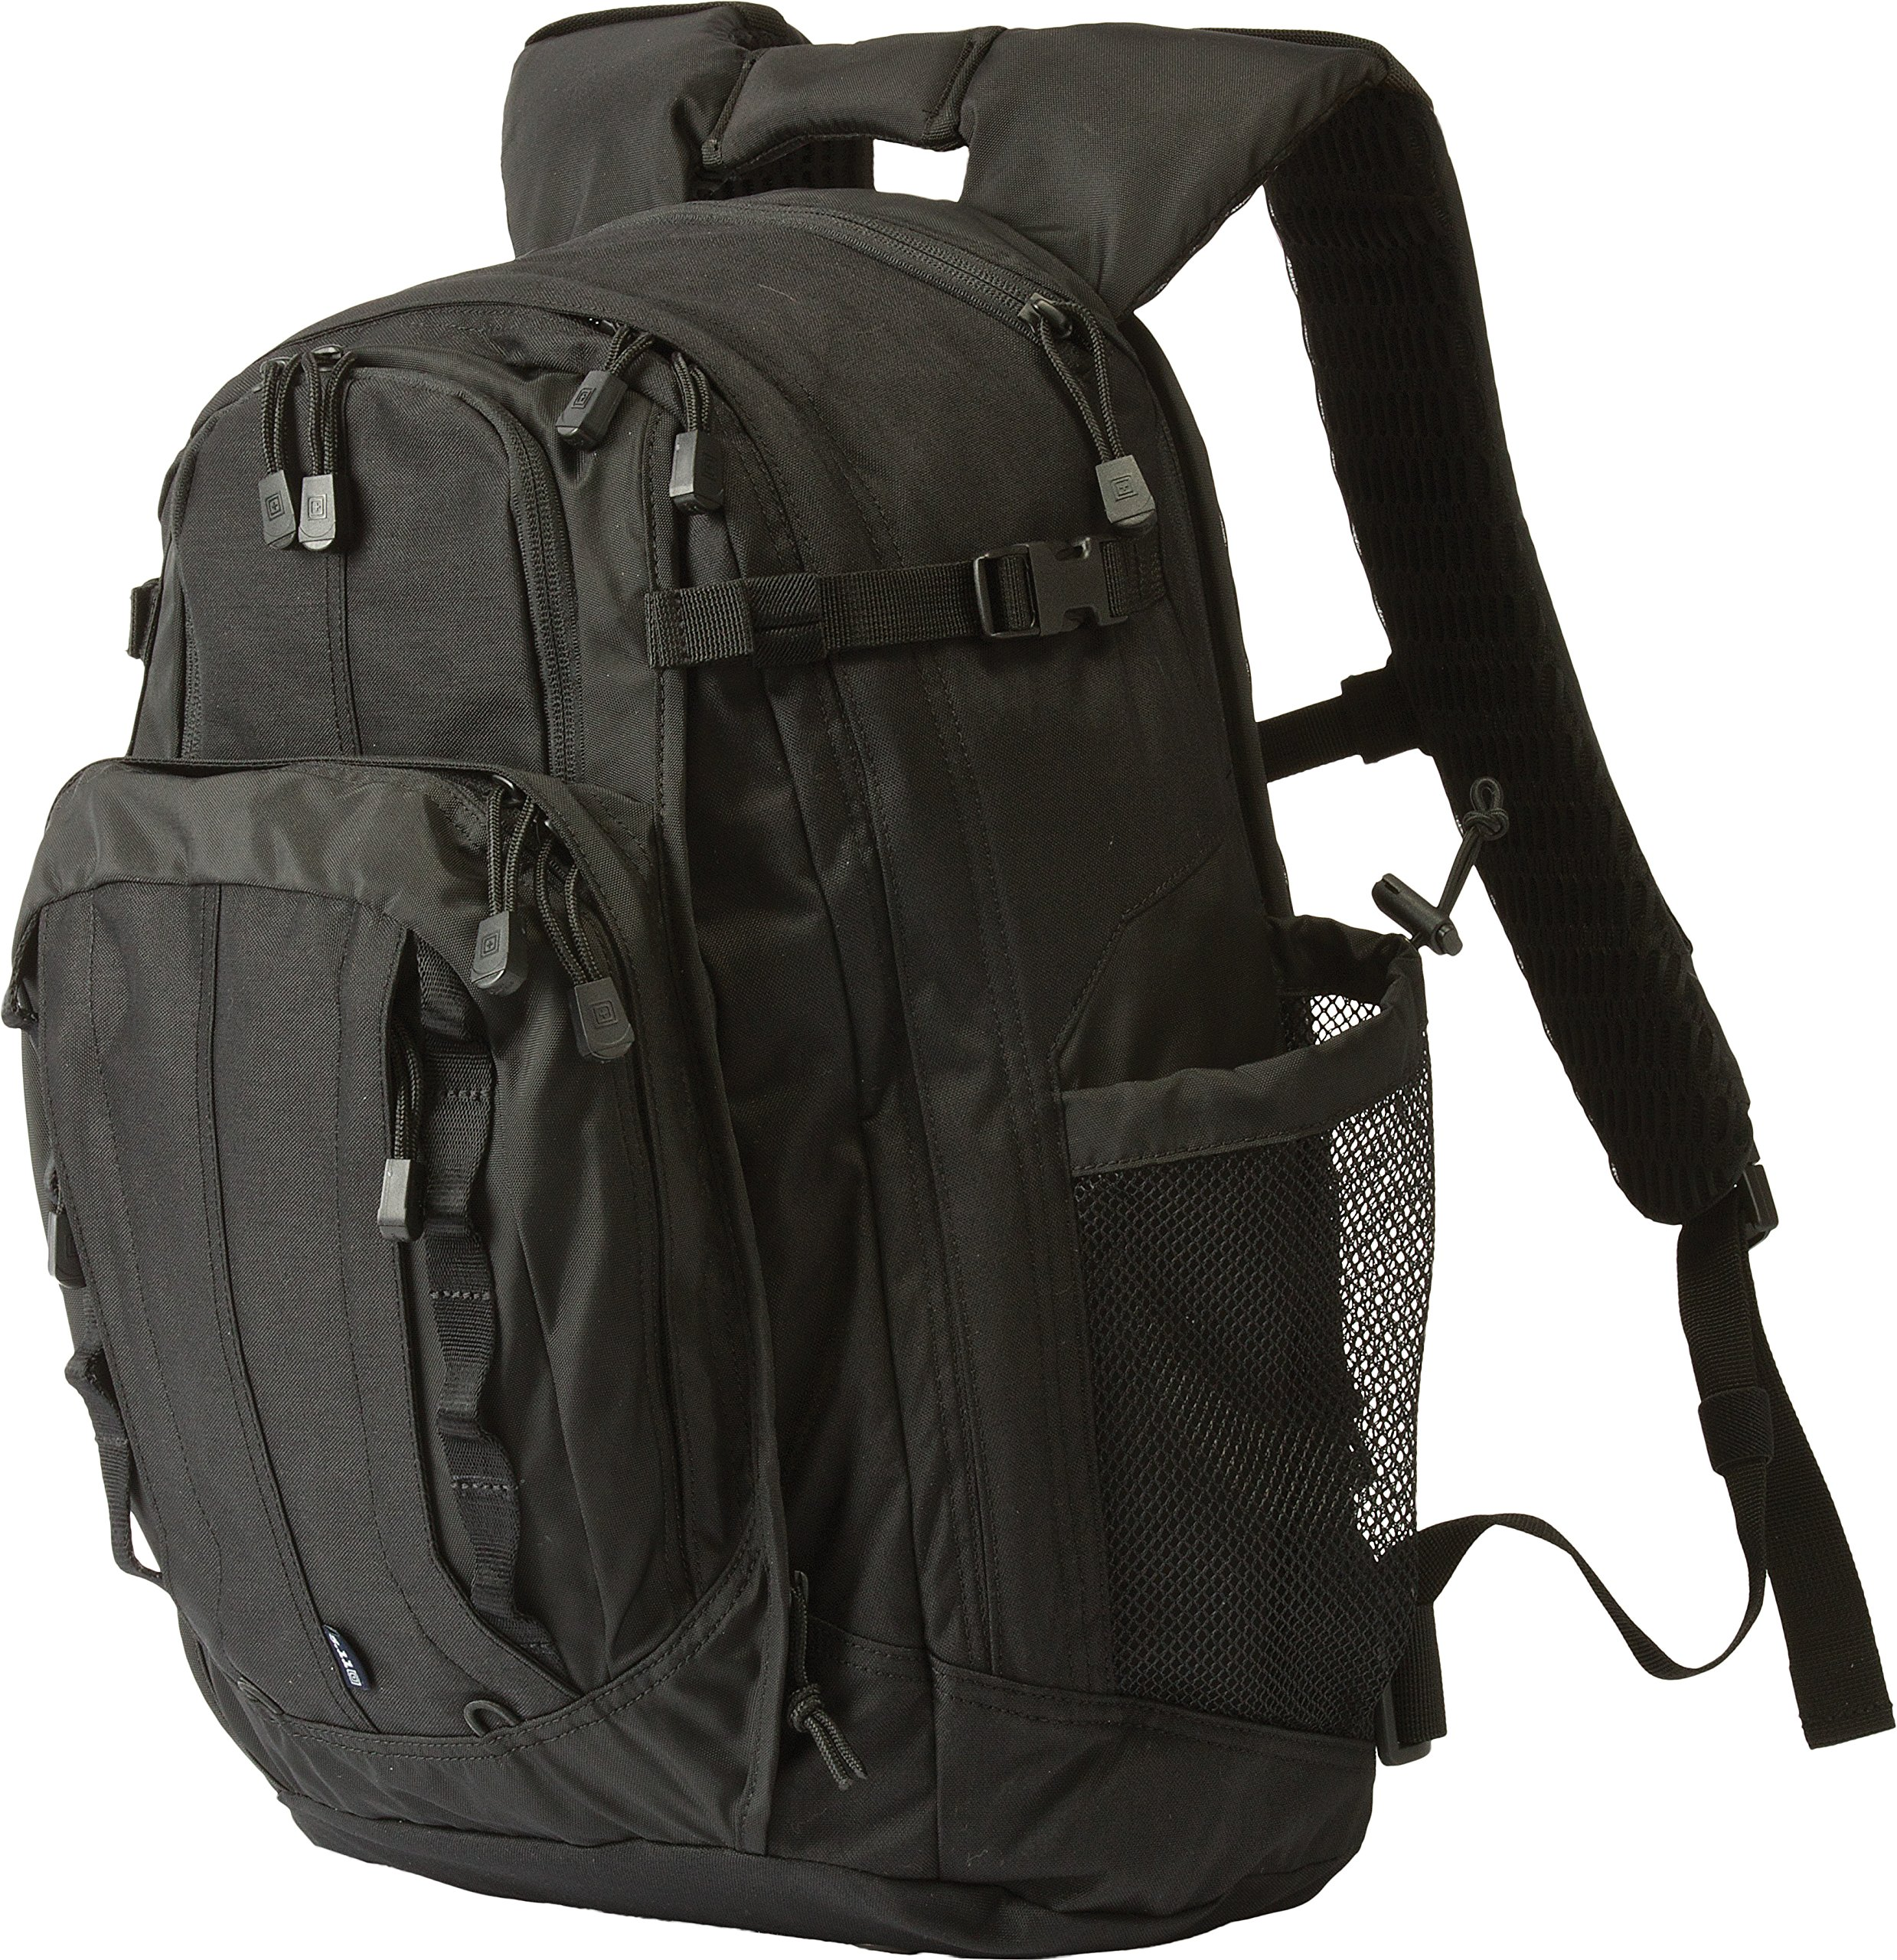 5.11 Tactical COVRT 18 Backpack by 5.11 Outdoor (Image #2)